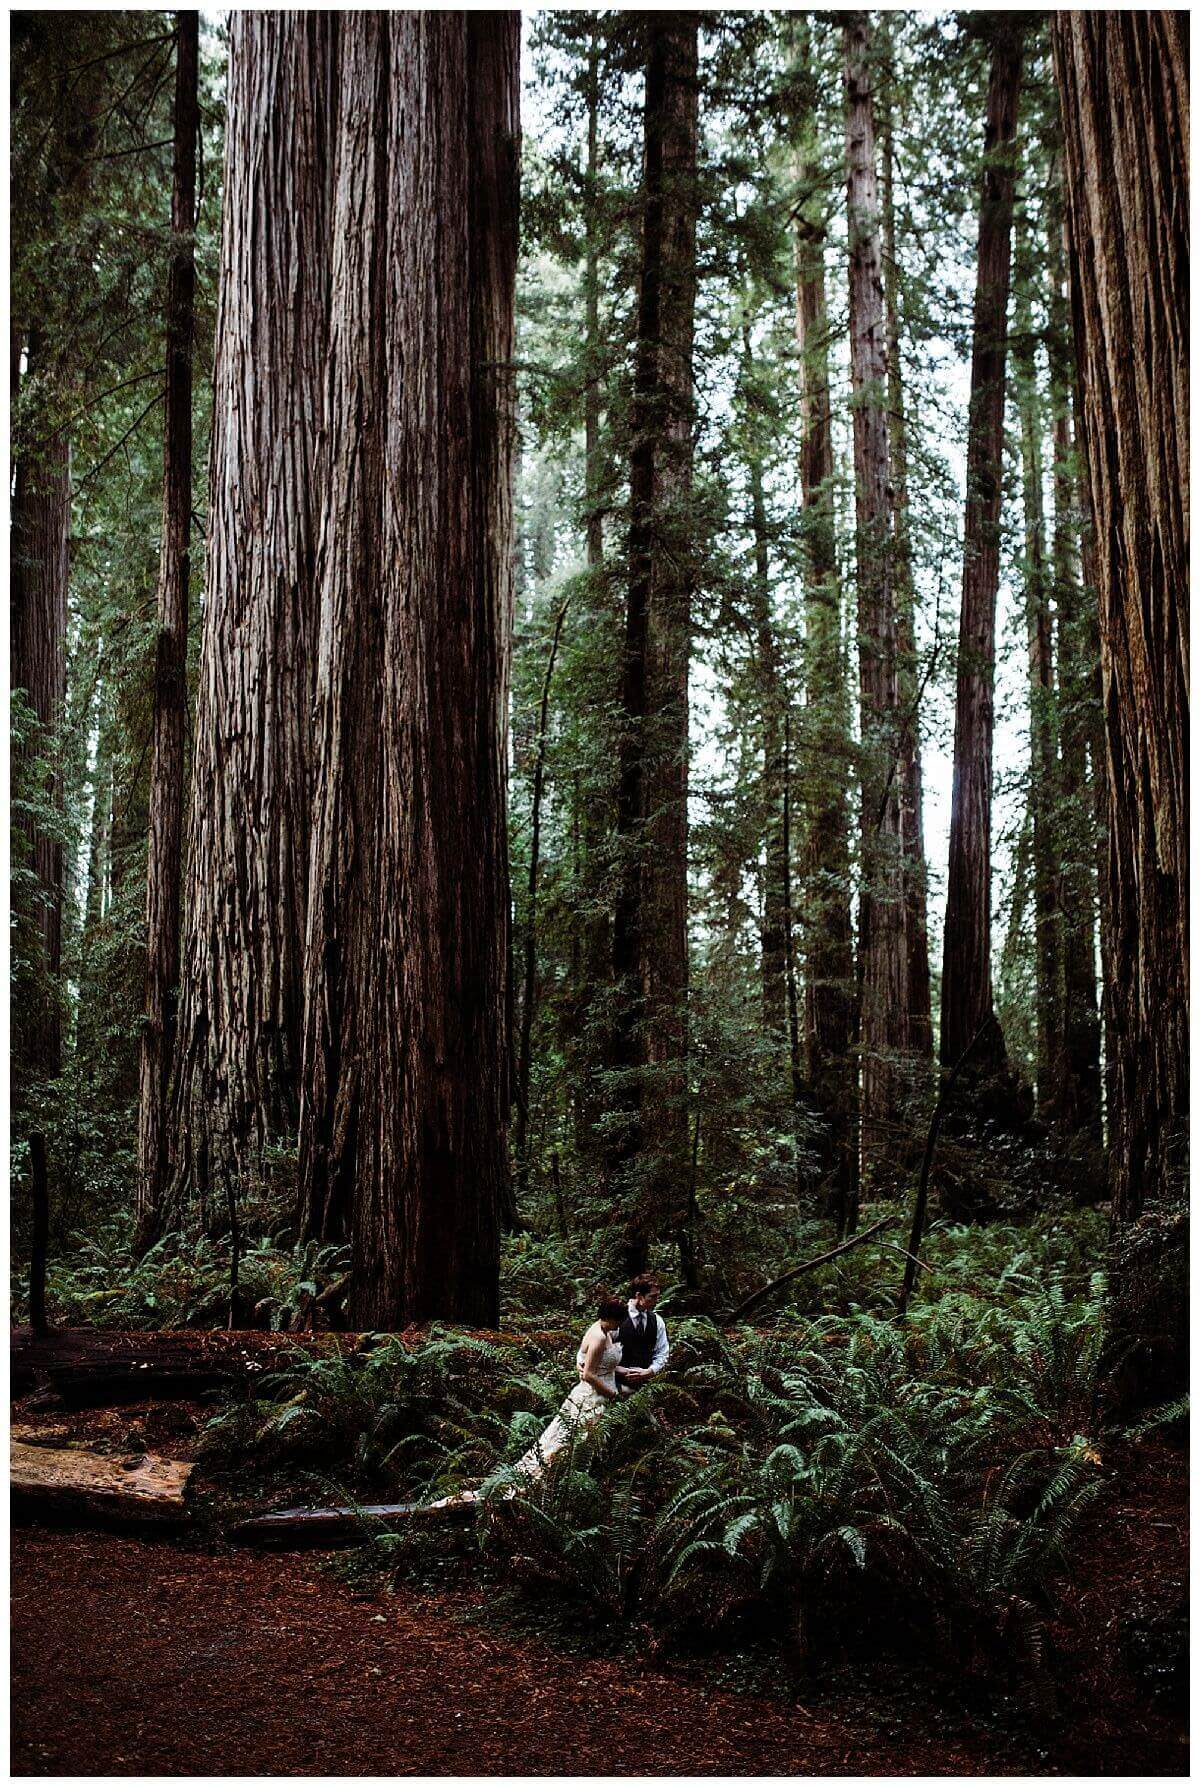 California Coastal Redwoods Elopement | S Photography | Pacific Northwest Intimate Wedding and Elopement Photographer